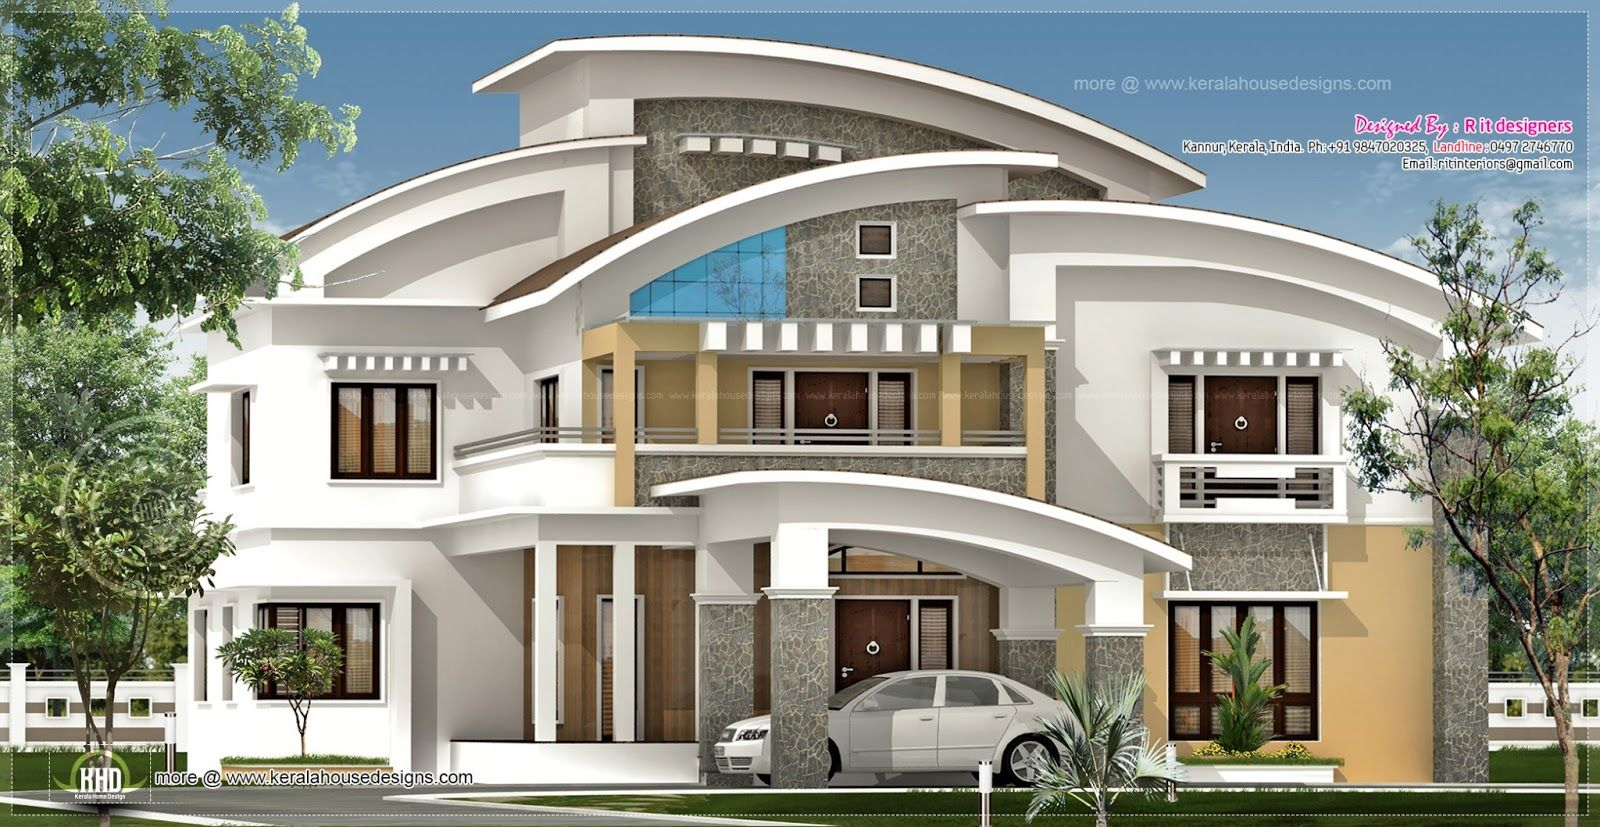 Awesome luxury homes plans 8 french country luxury home for Home designs exterior styles